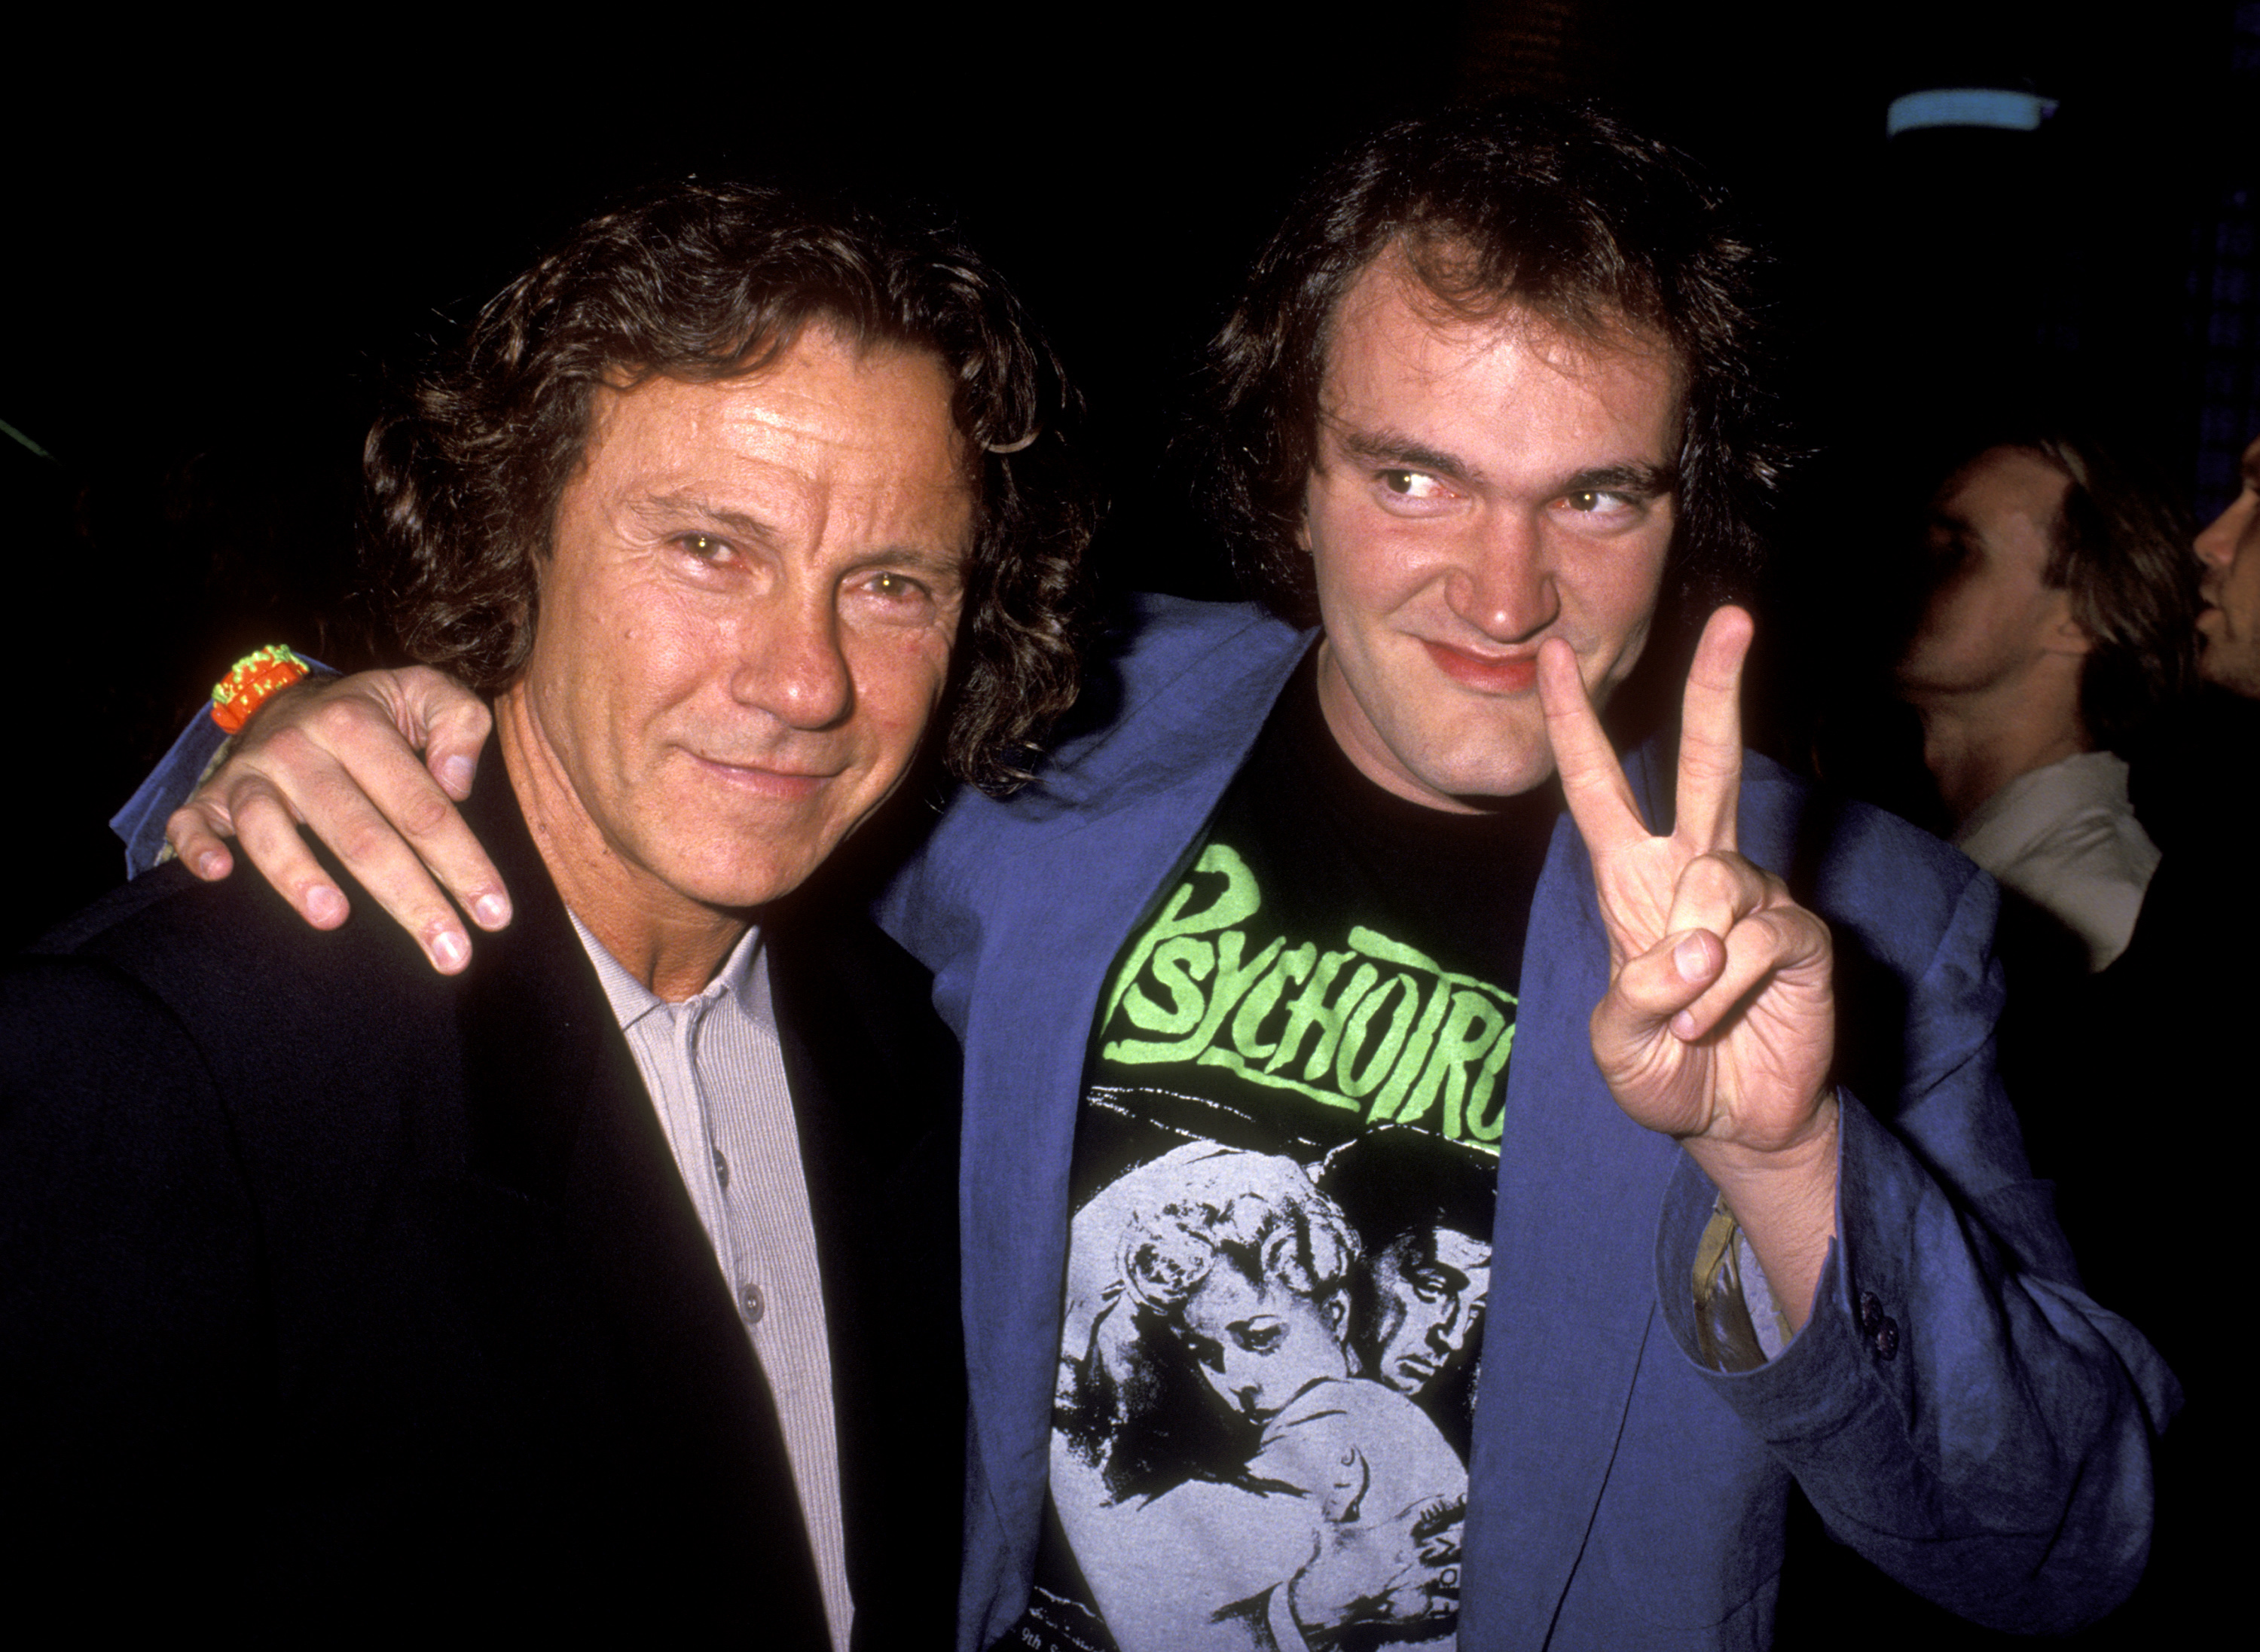 Harvey Keitel and Quentin Tarantino at an event for Reservoir Dogs (1992)